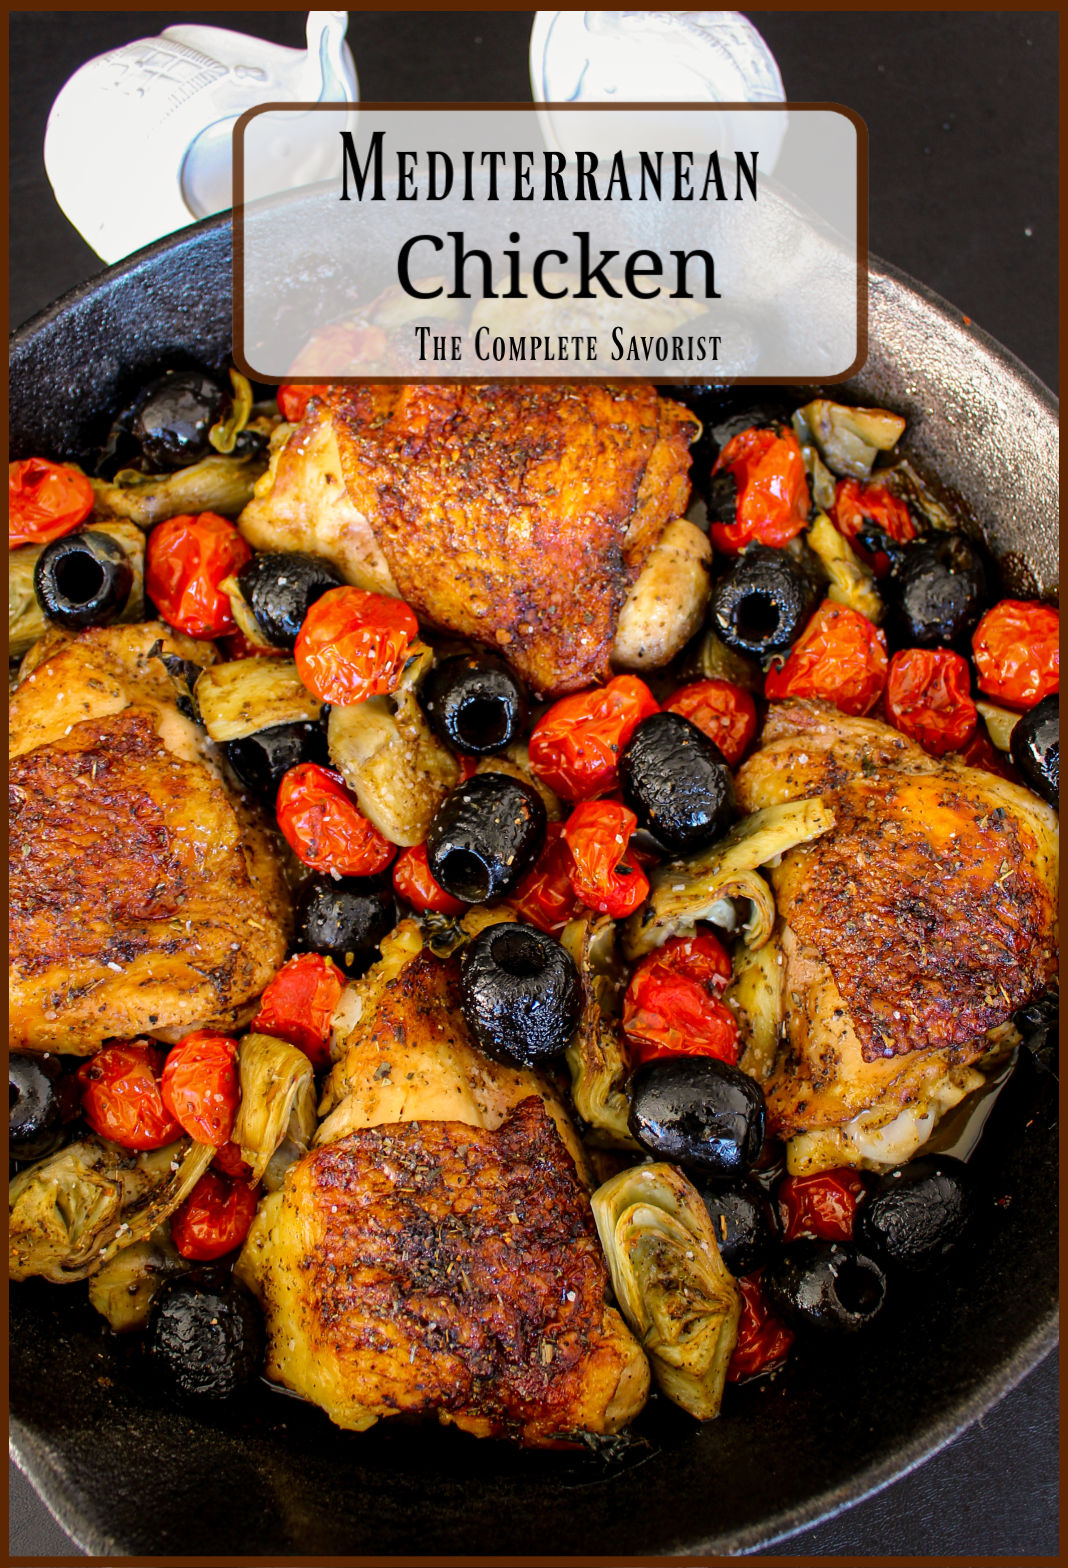 Balsamic glazed chicken thighs, olives, artichokes, and tomatoes in a cast iron skillet